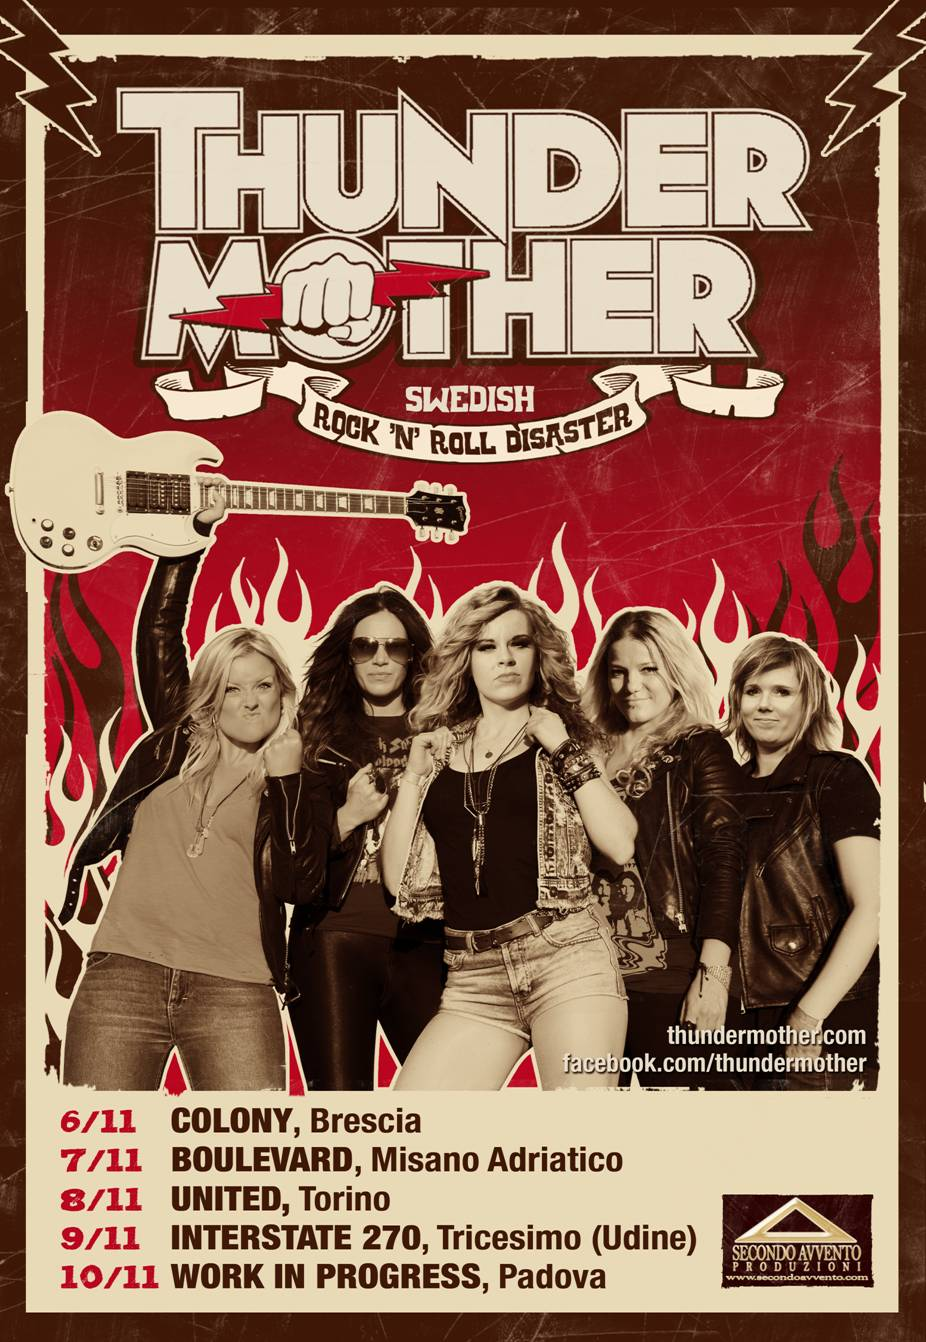 Tornano in Italia le Thundermother